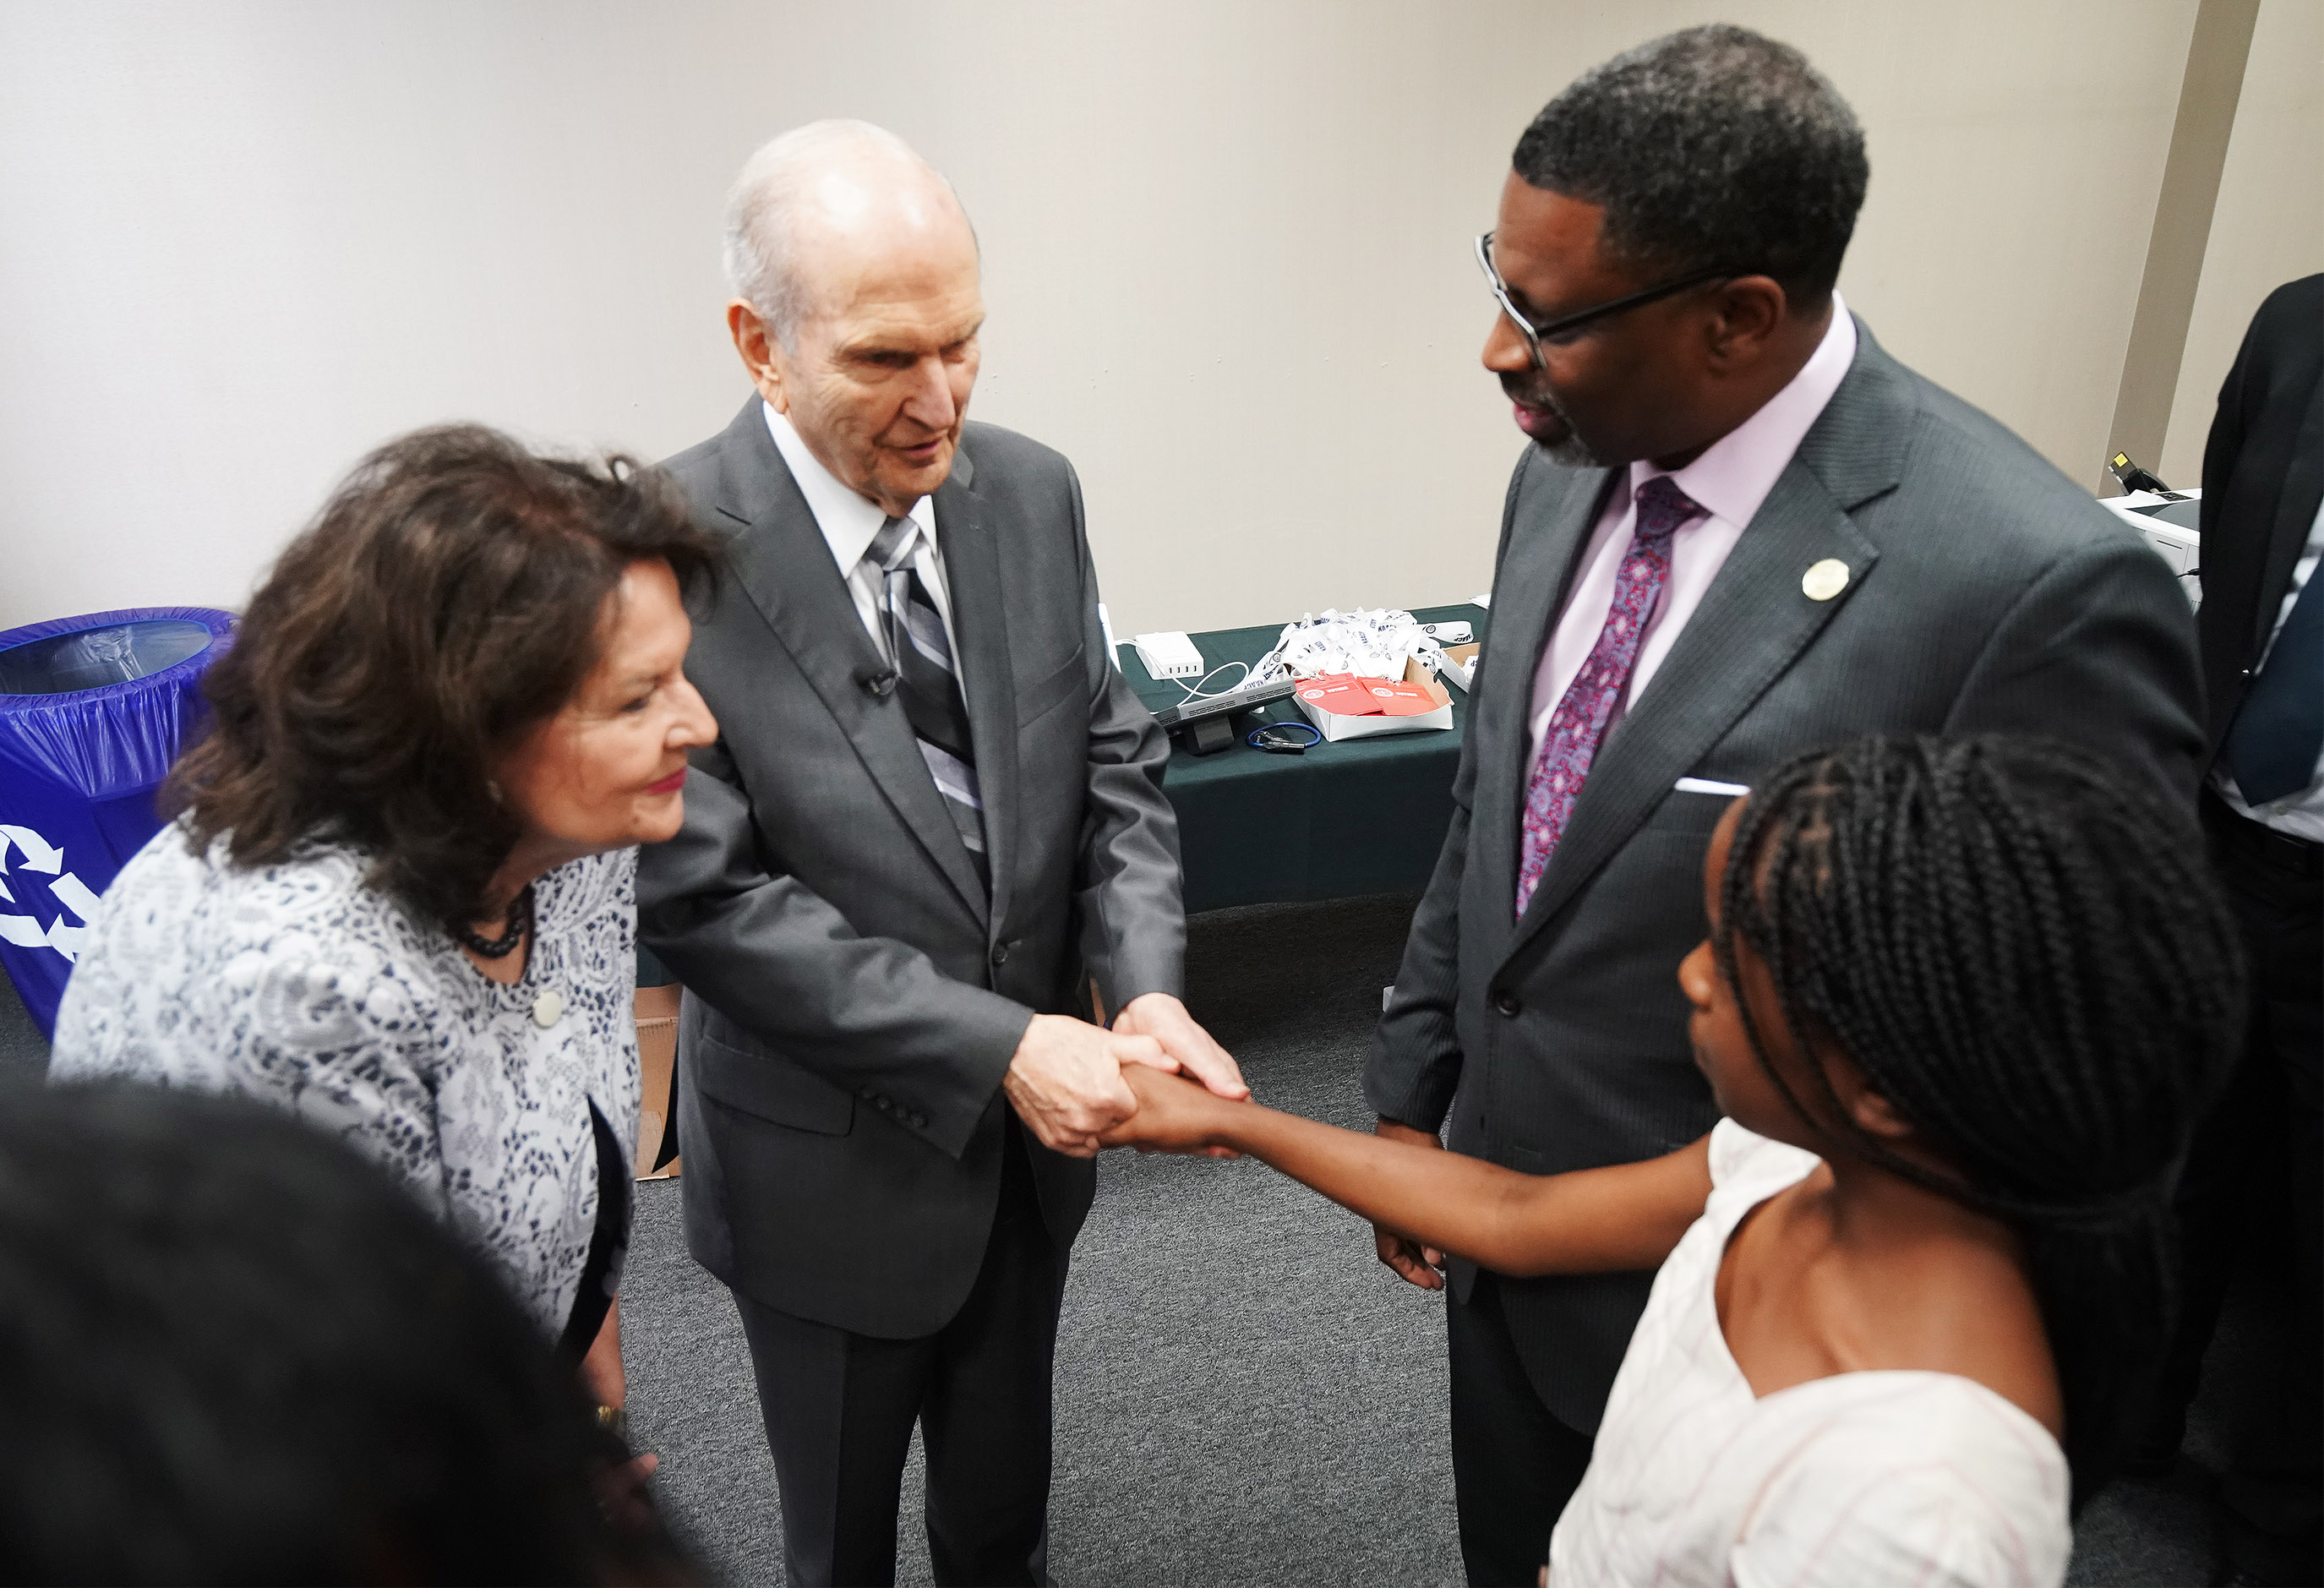 President Russell M. Nelson of The Church of Jesus Christ of Latter-day Saints and his wife Sister Wendy Nelson meet with Derrick Johnson and his daughter Safiya at the 110th annual national convention for the National Association for the Advancement of Colored People in Detroit on Sunday, July 21, 2019.